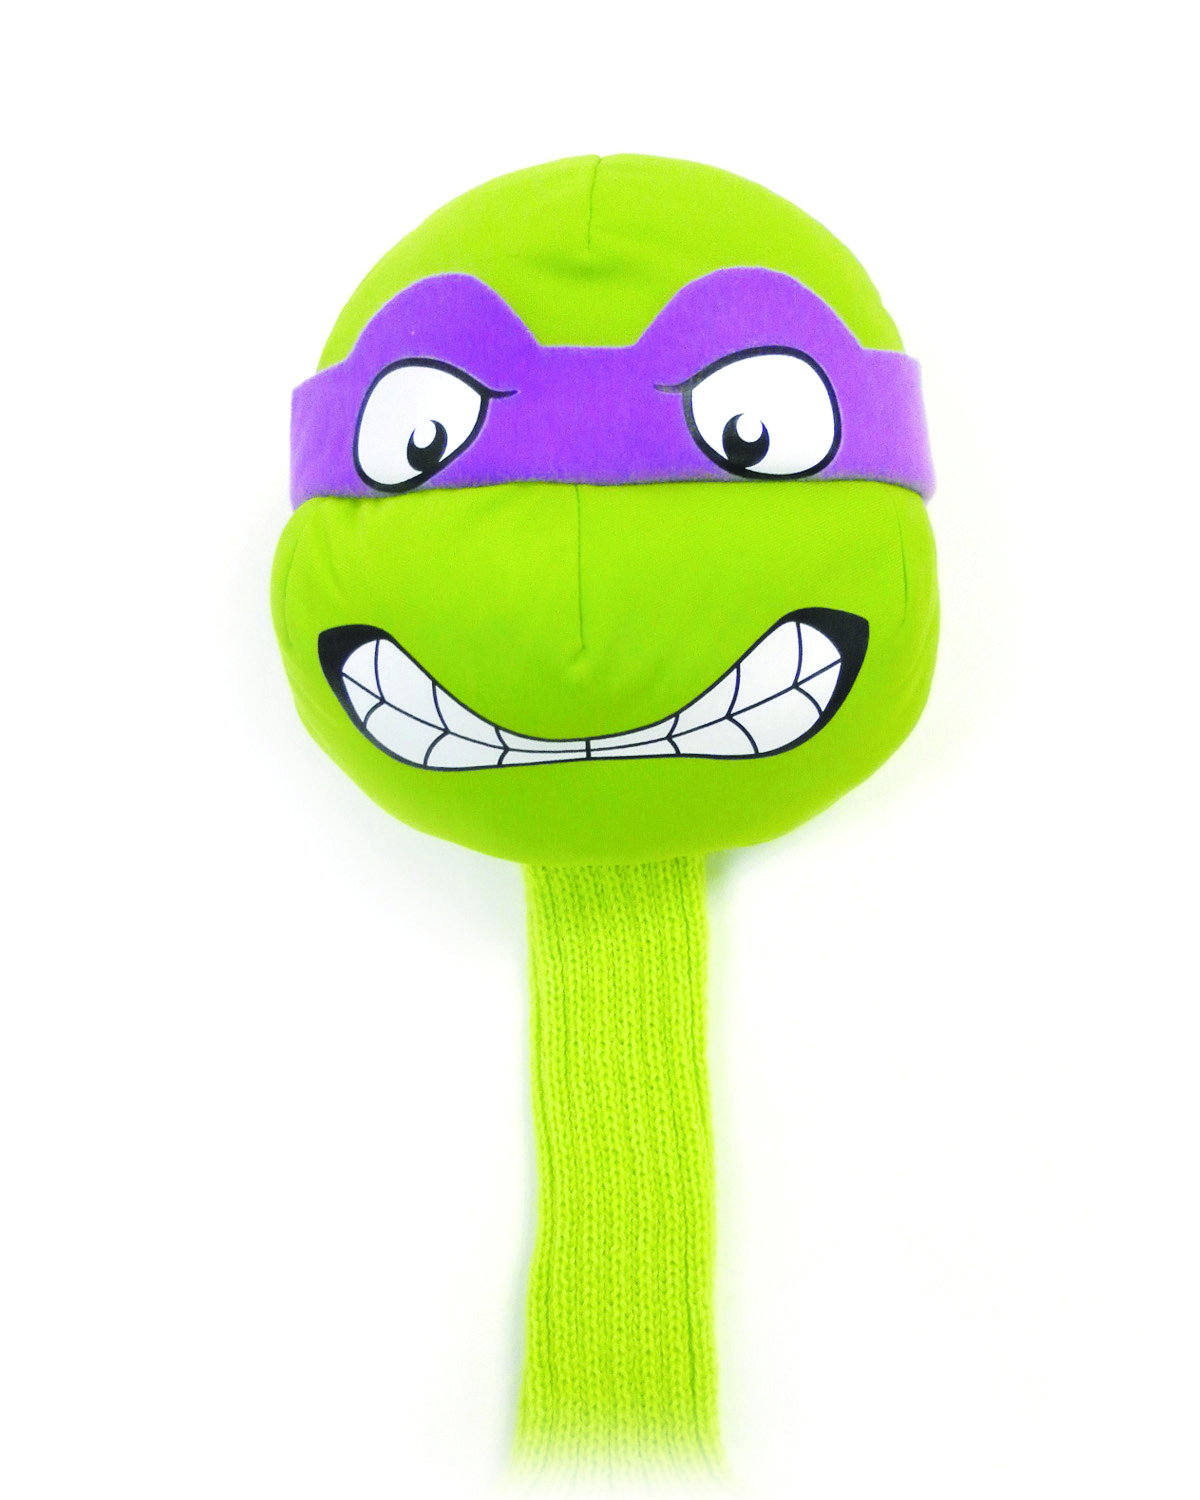 TMNT LEONARDO GOLF CLUB COVER